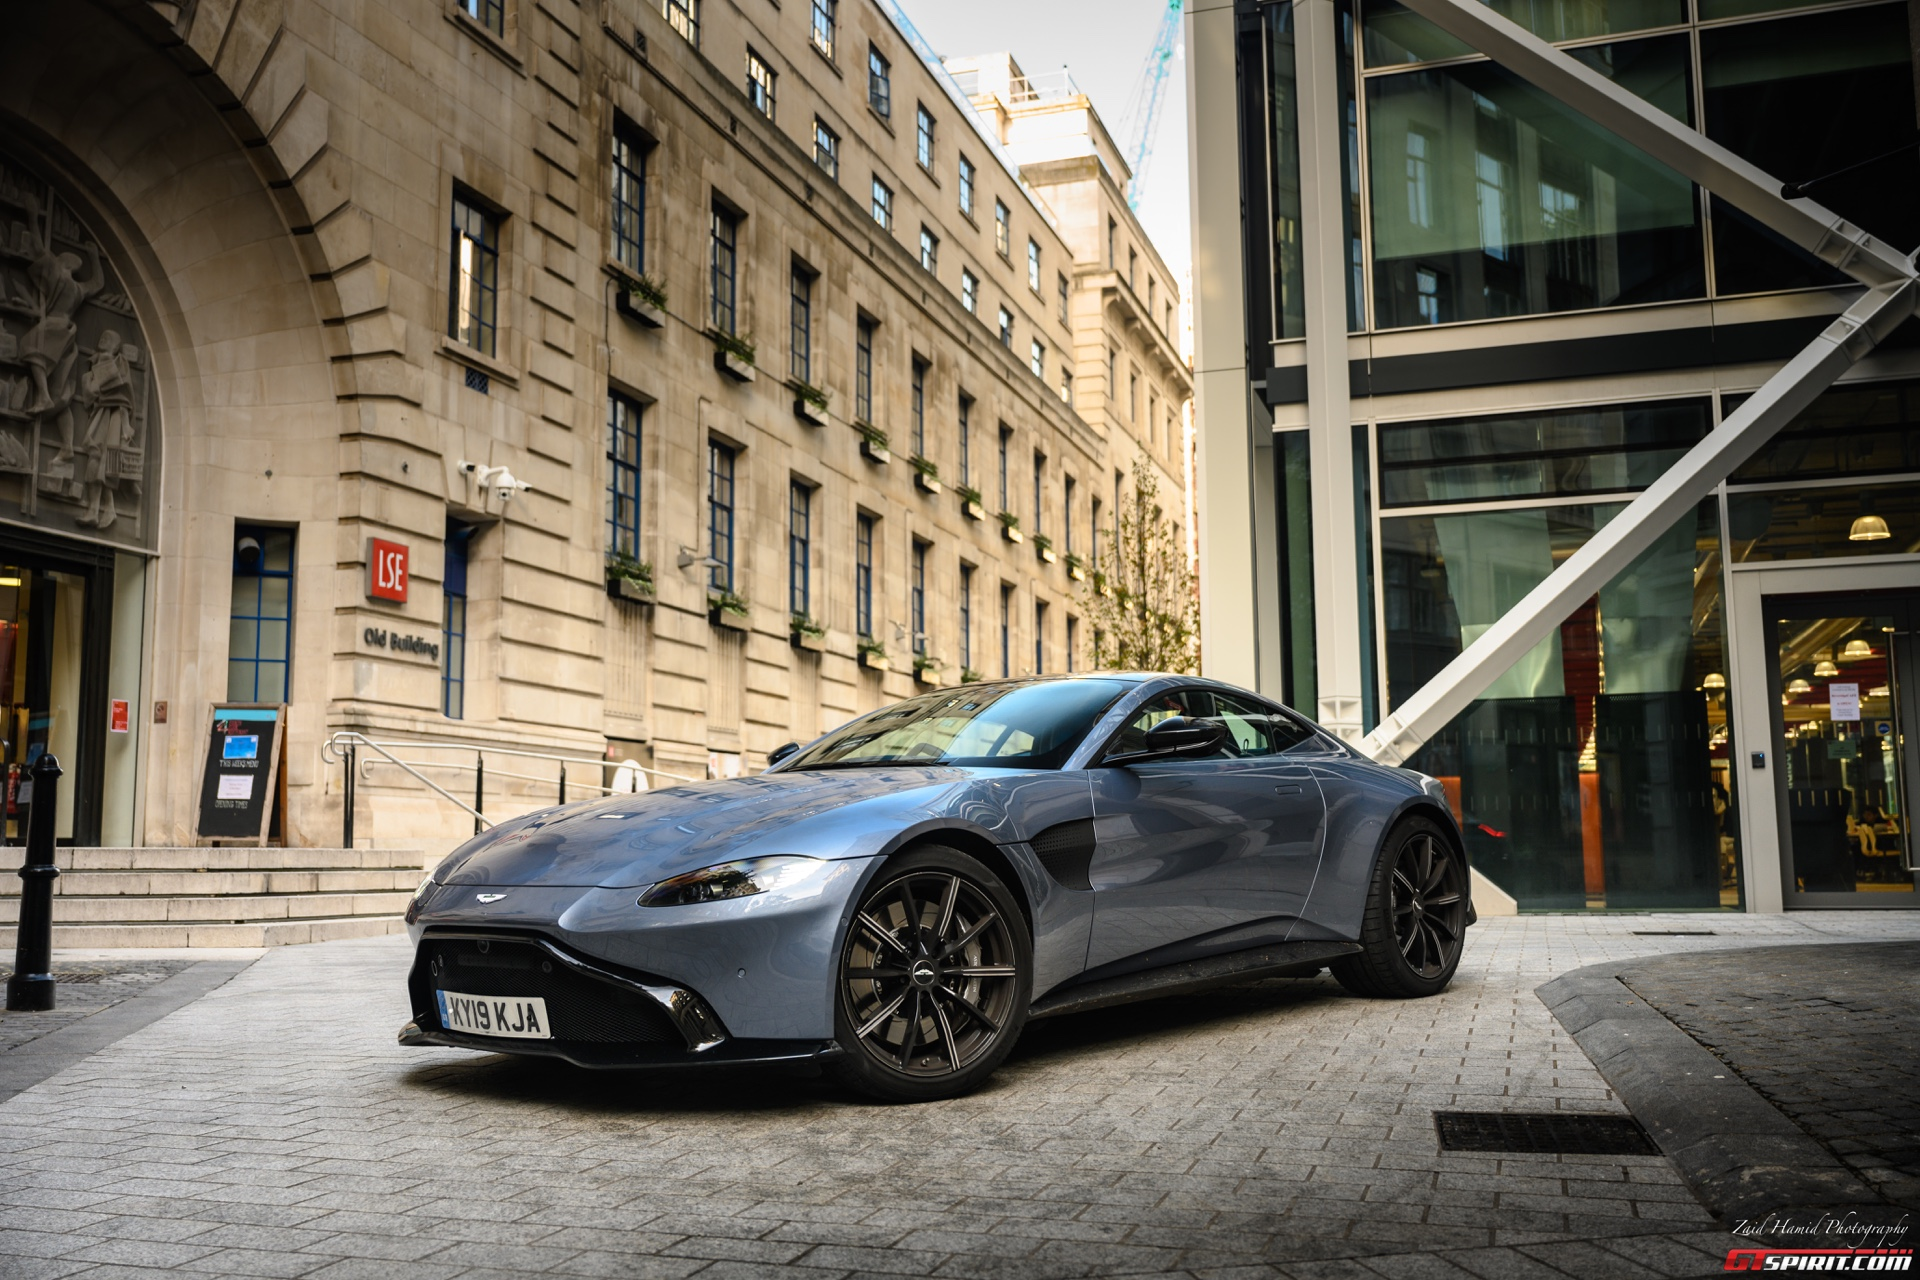 Special Report: The 2019 Aston Martin Vantage, better than a 911?